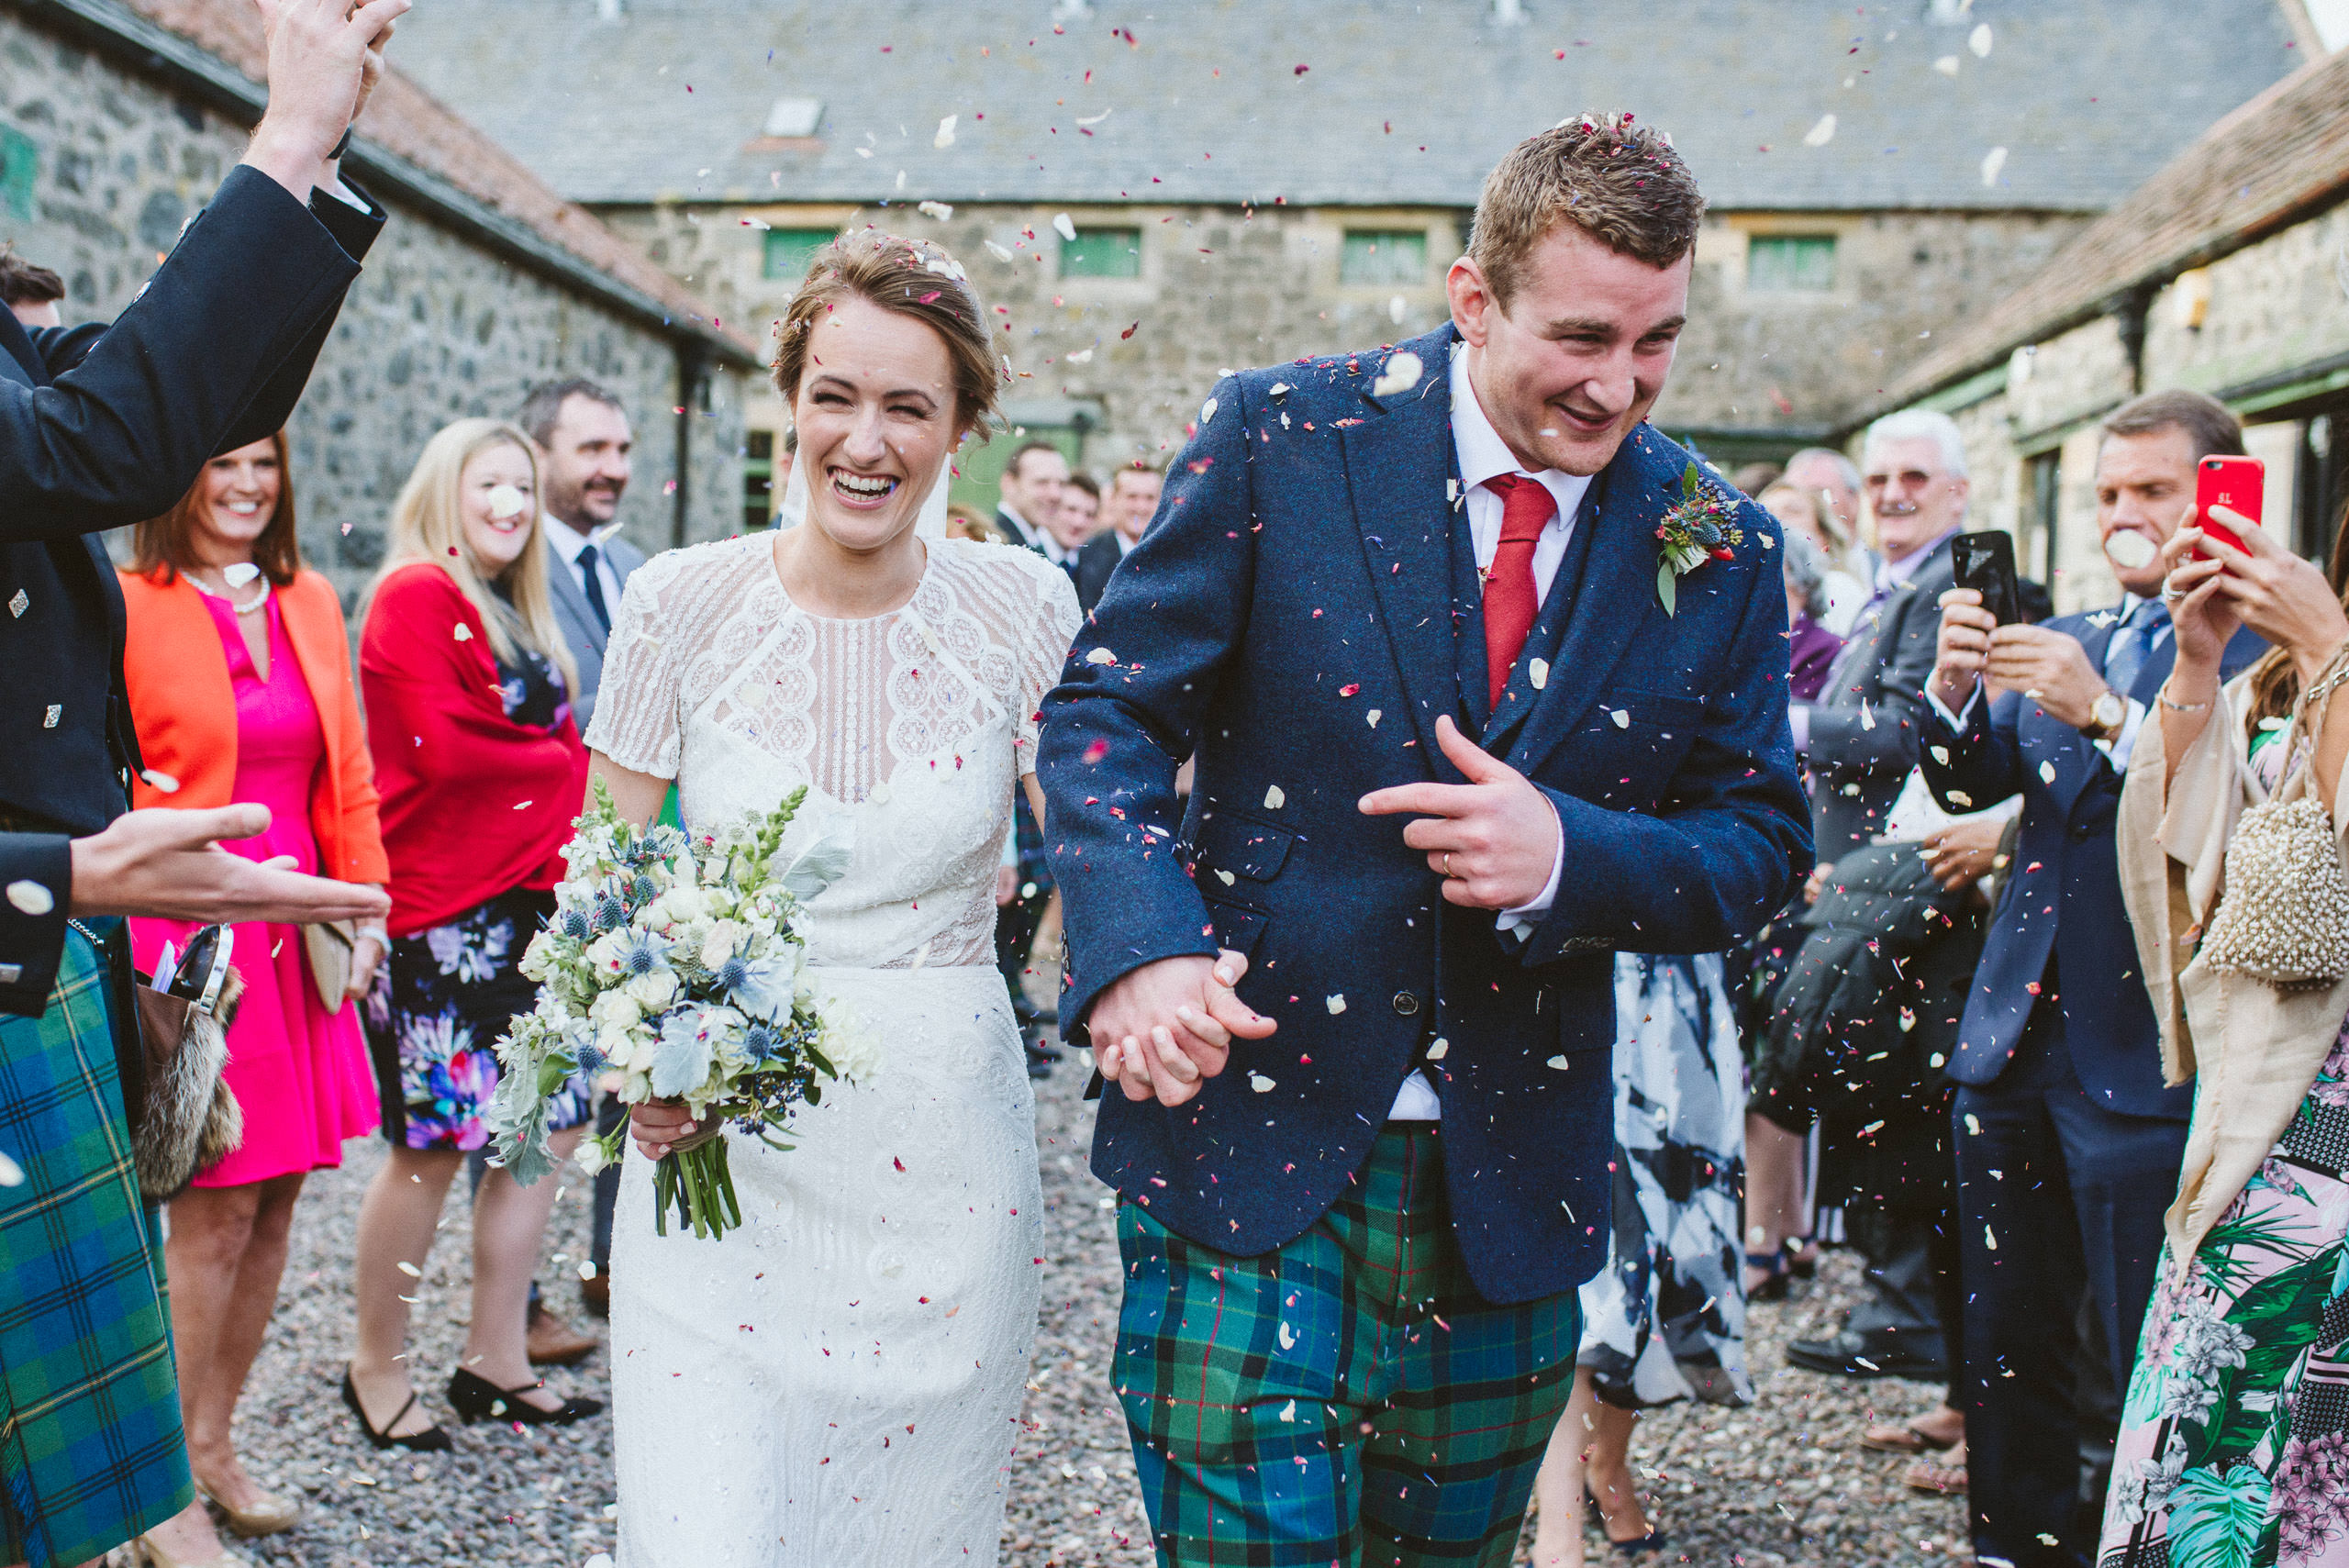 A confetti shot after the wedding ceremony at Pratis Farm, Fife, Scotland